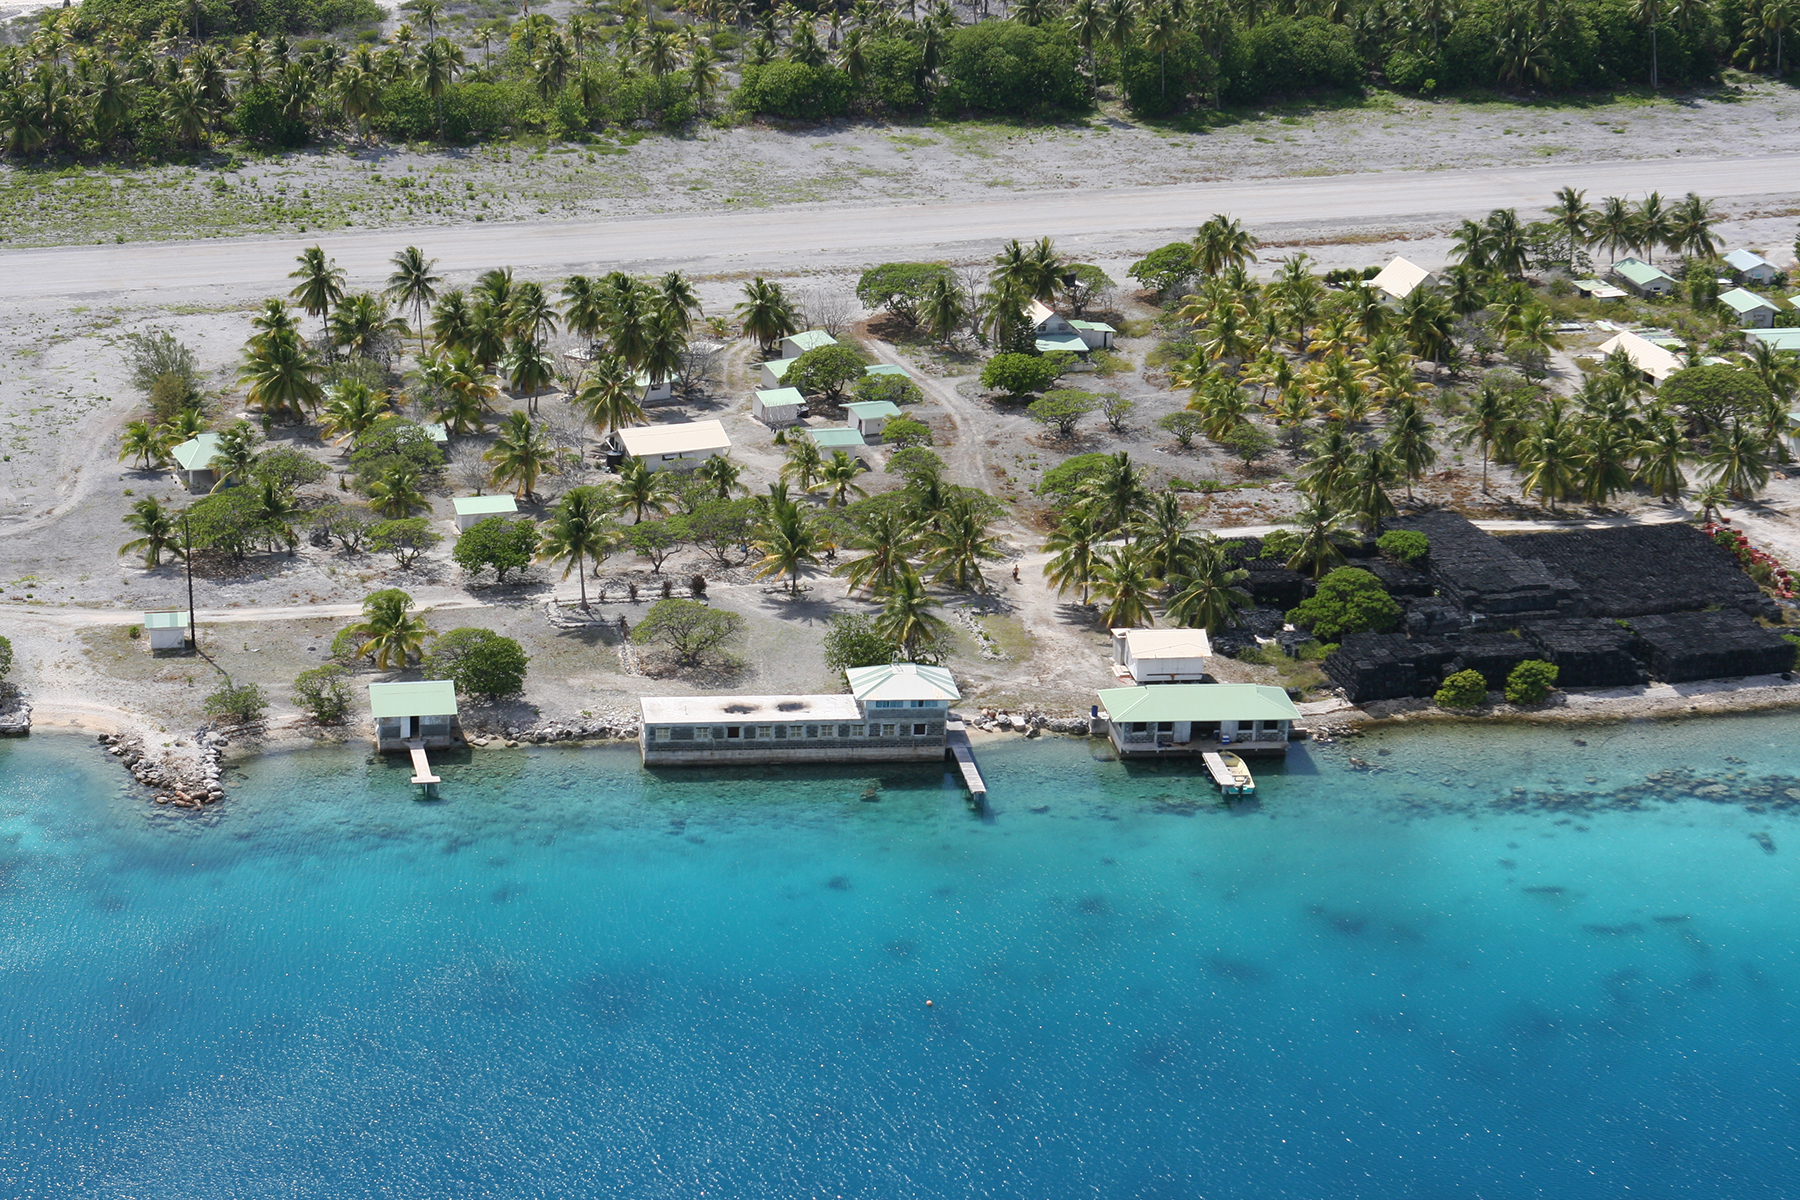 Private Island for Sale at Nengo Nengo private atoll French Polynesia